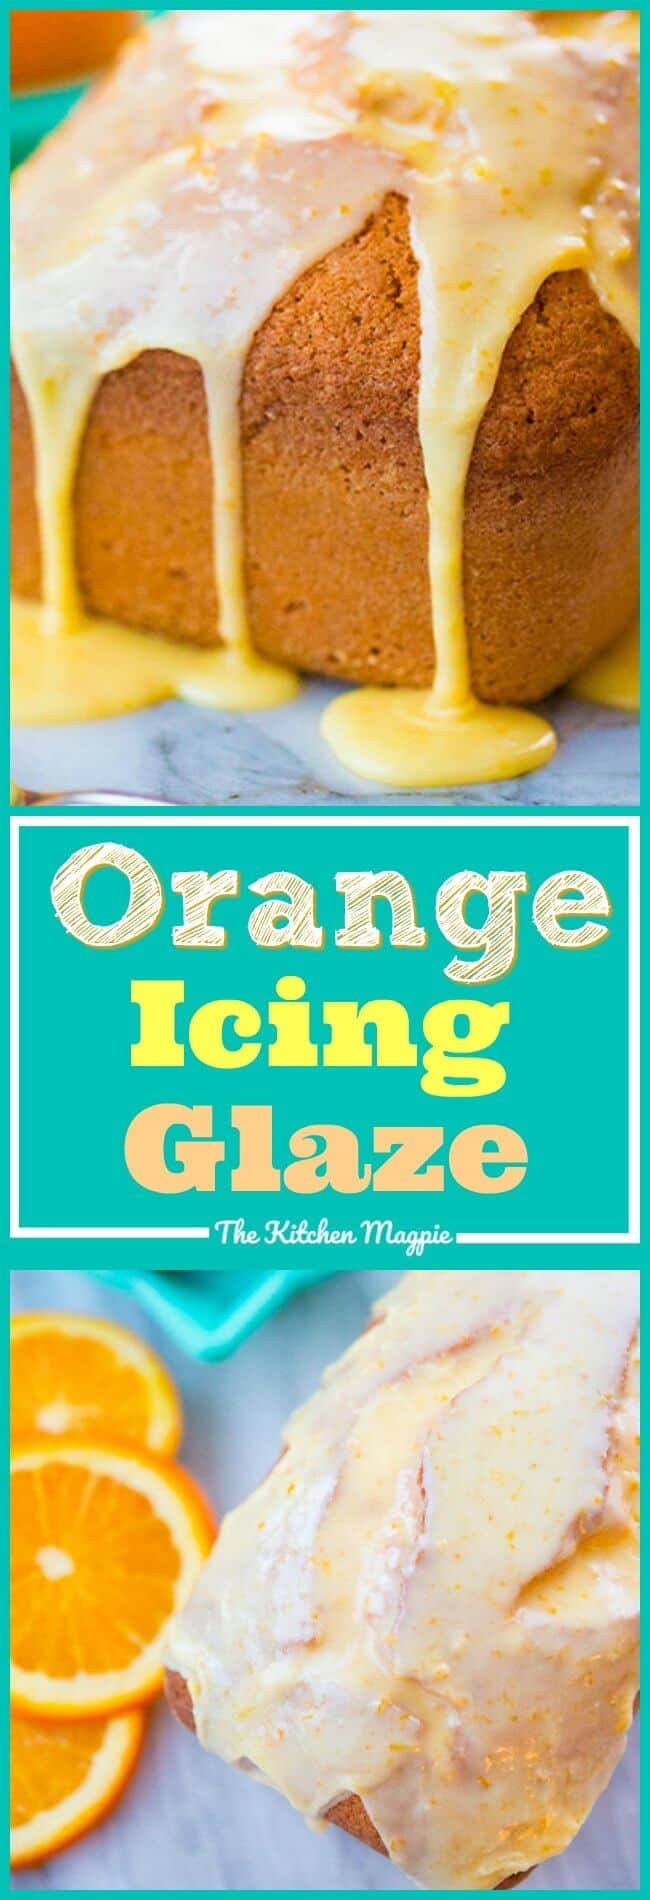 How to Make an Orange Icing Glaze for your cakes, sweet breads, cupcakes and more! It's so simple and easy - and orange is SO under loved when it comes to baking! Well, not anymore! #orange #recipes #baking #dessert #icing